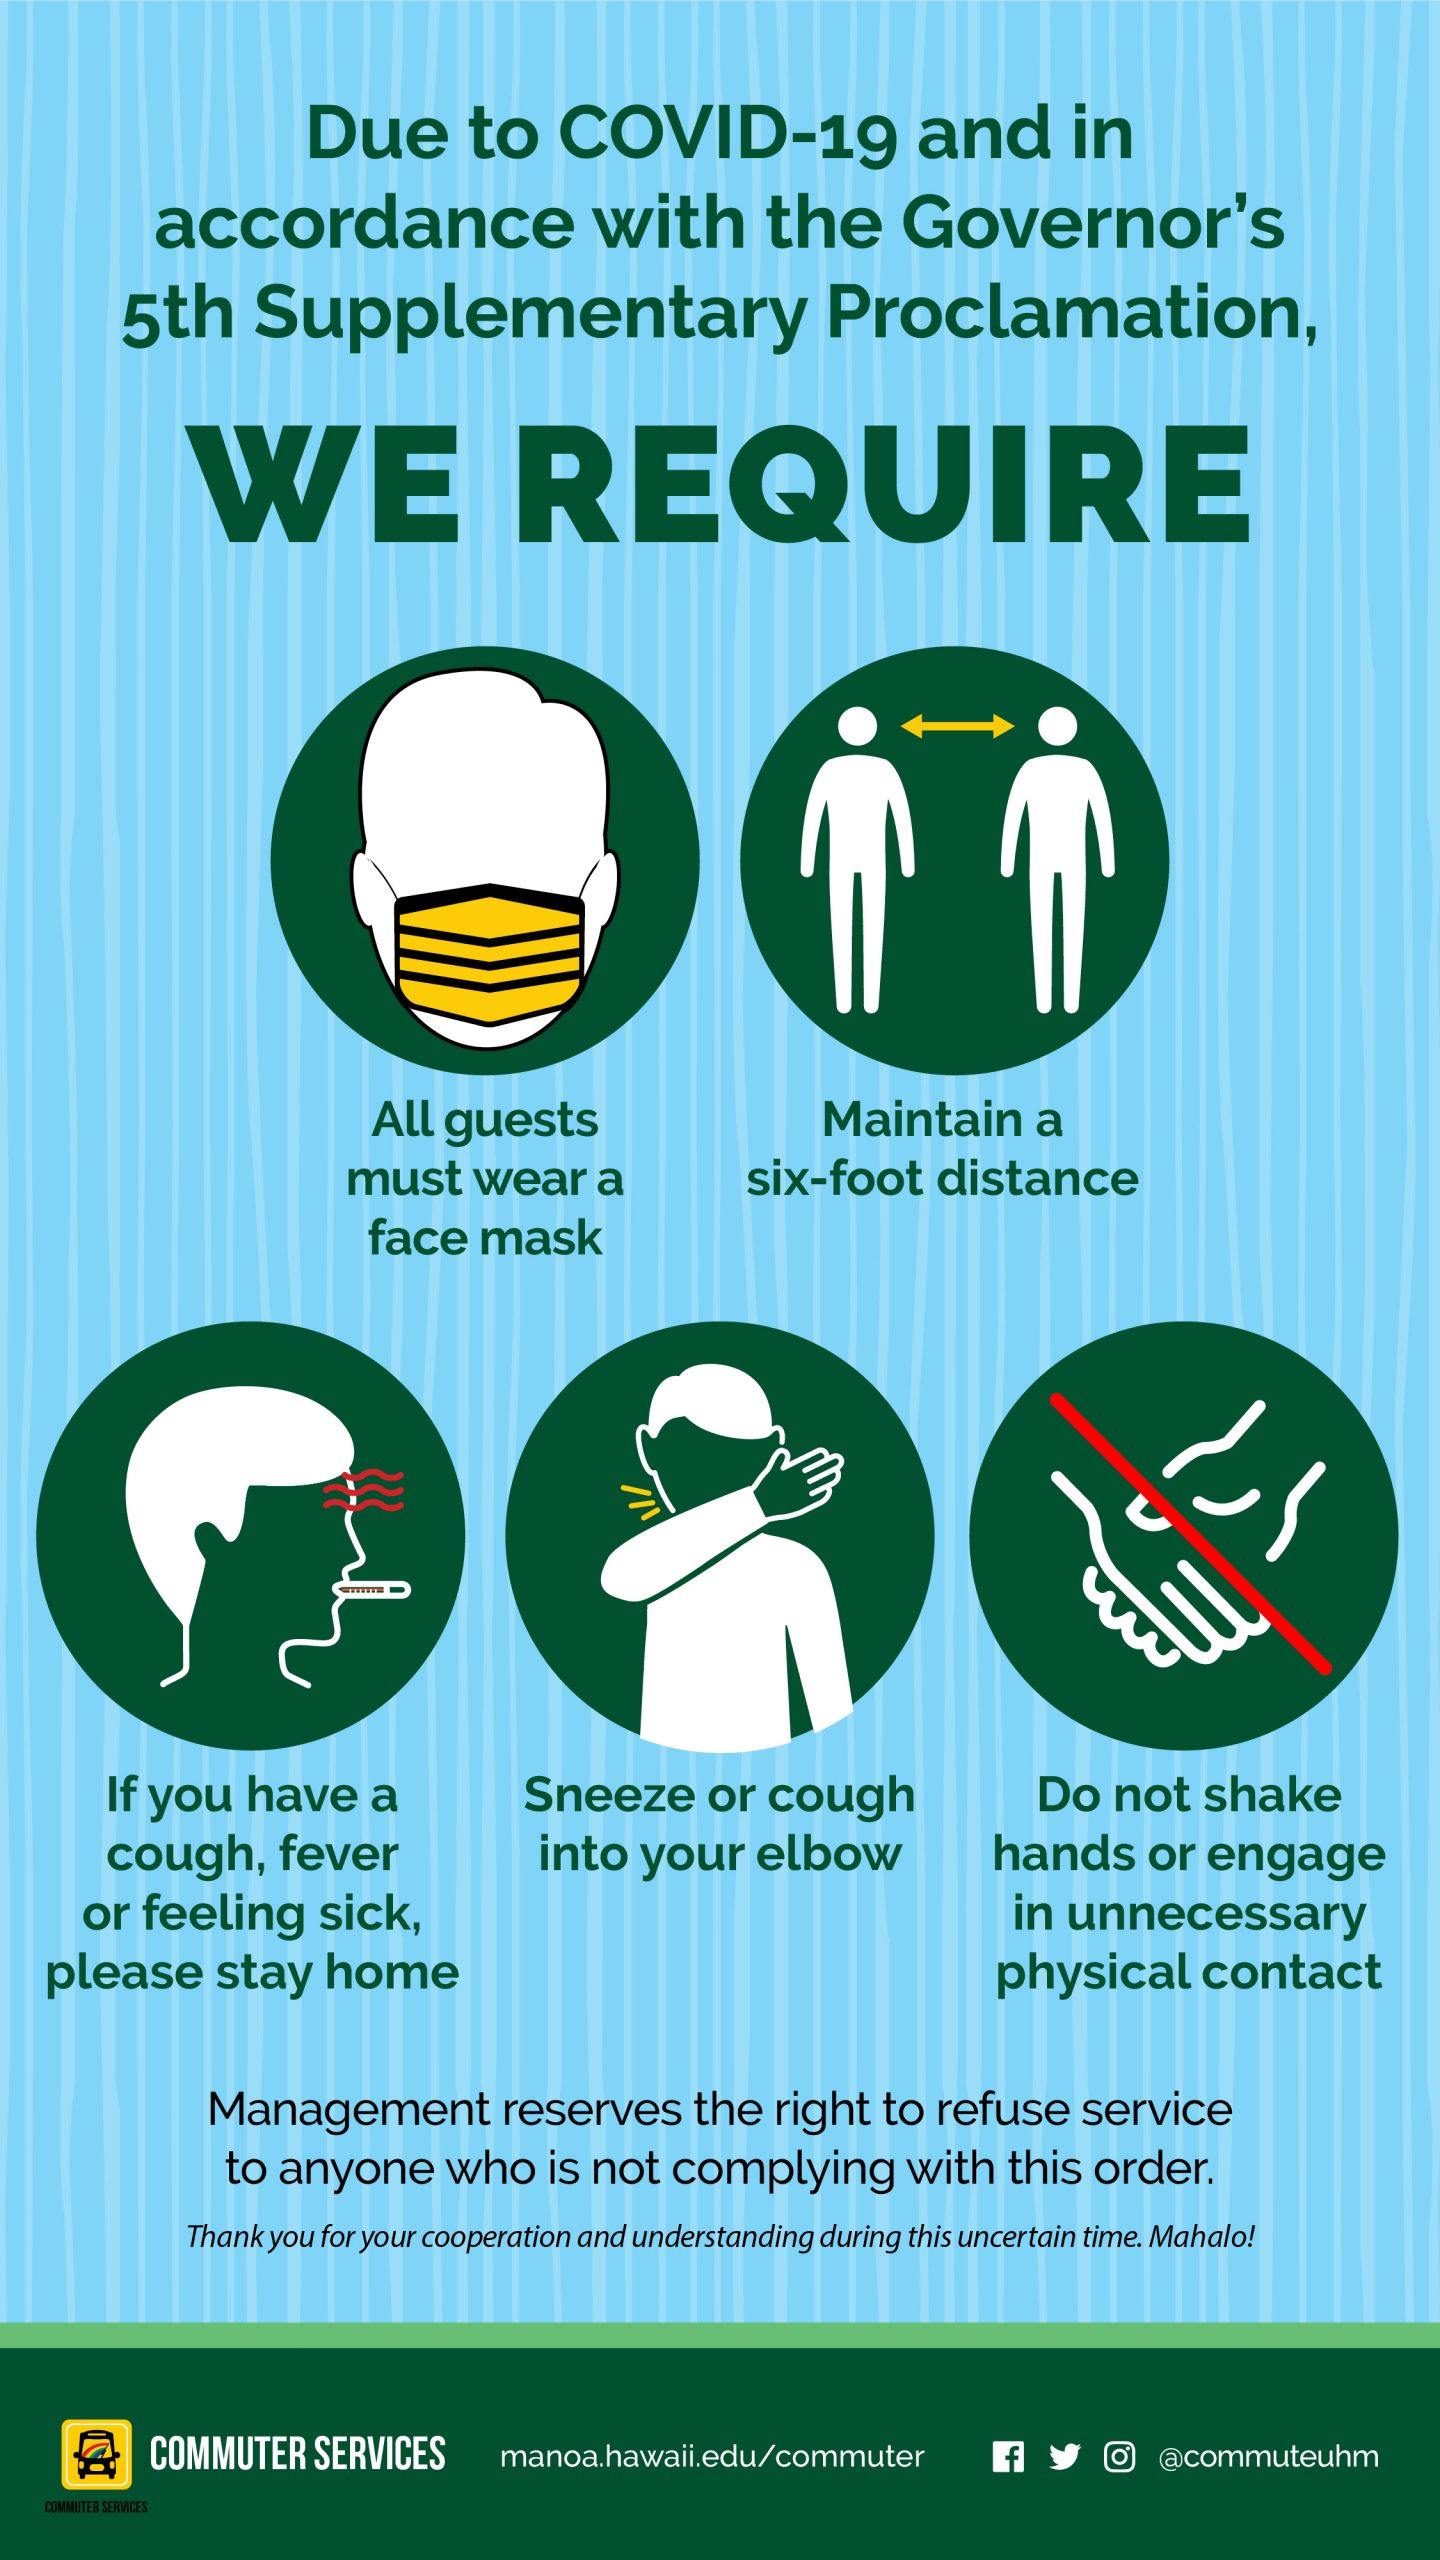 We require all guests to wear a face mask, maintain a 6ft desitance, stay home if you have a cough, fever, or feel sick, sneeze or cough into your elbow, and do not shake hands or engage in unnecessary physical contact.